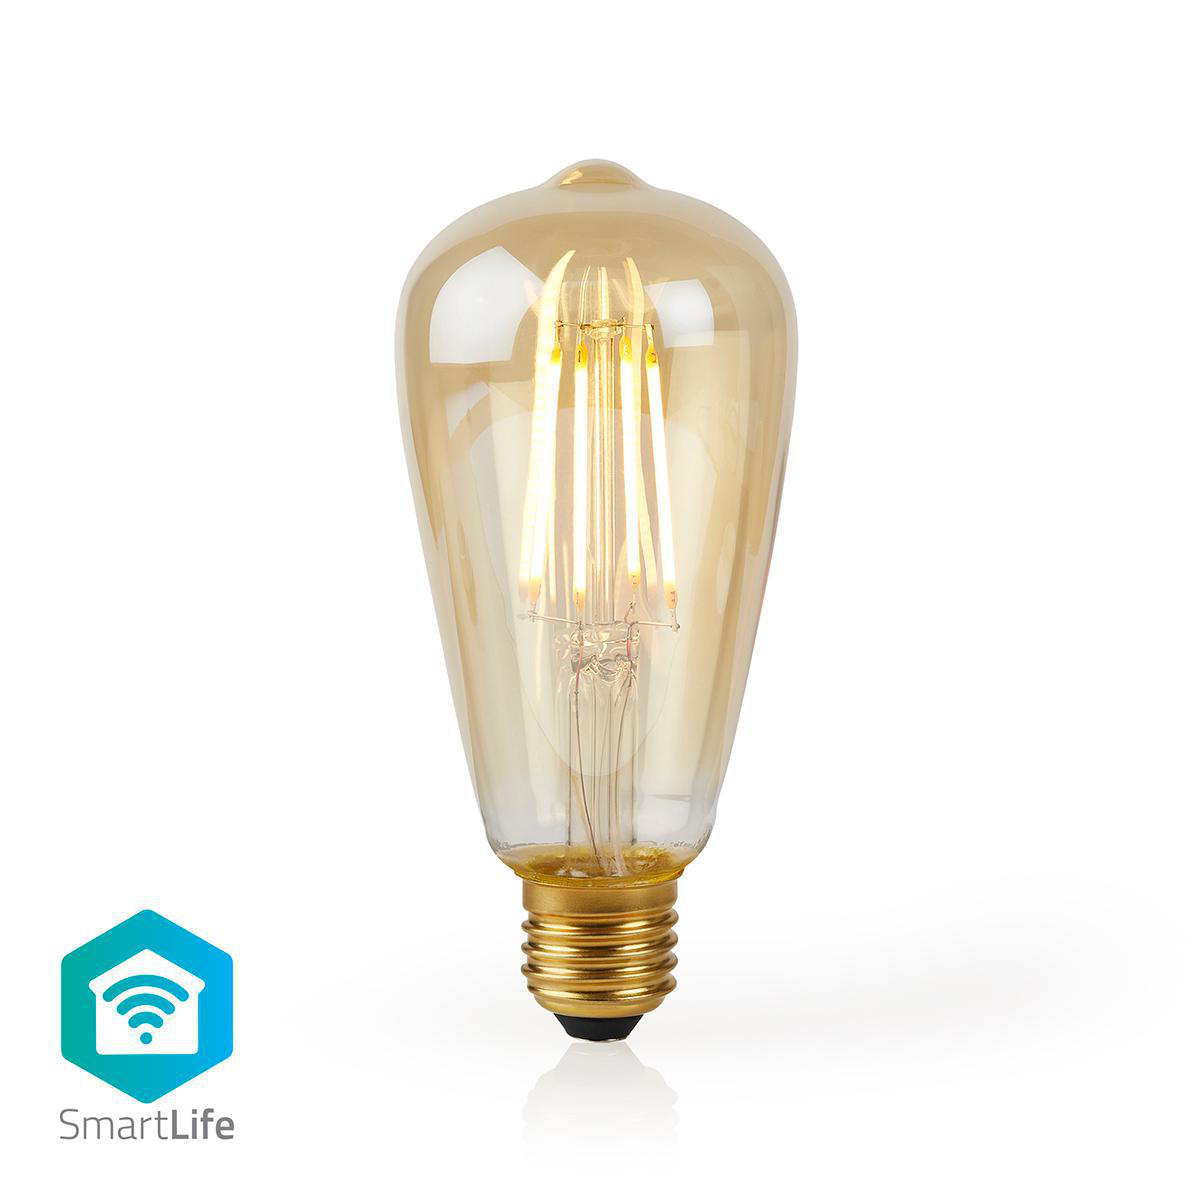 Slimme Wifi Edison filament lamp E27 - 5 watt- warm wit